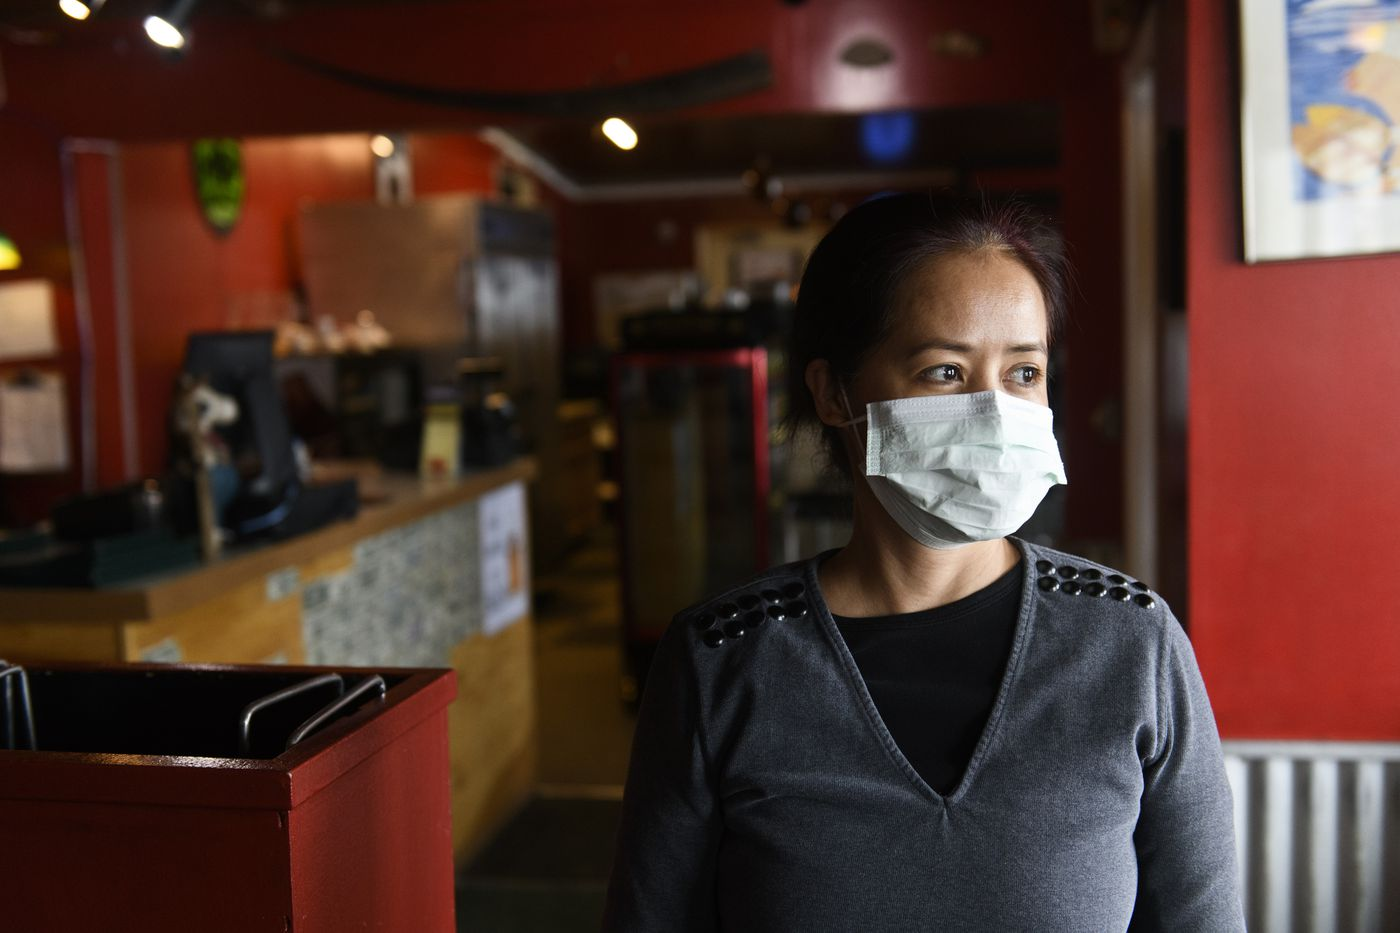 "MARCH 16. Jelma Chang said she started wearing a mask while working at Airport Pizza, a Nome restaurant, to be cautious about coronavirus. Some customer may still come to Nome to see the Iditarod finish, despite the warnings, she said. ""I don't know what state they came from, what country they came from, ' she said. (Marc Lester / ADN)"